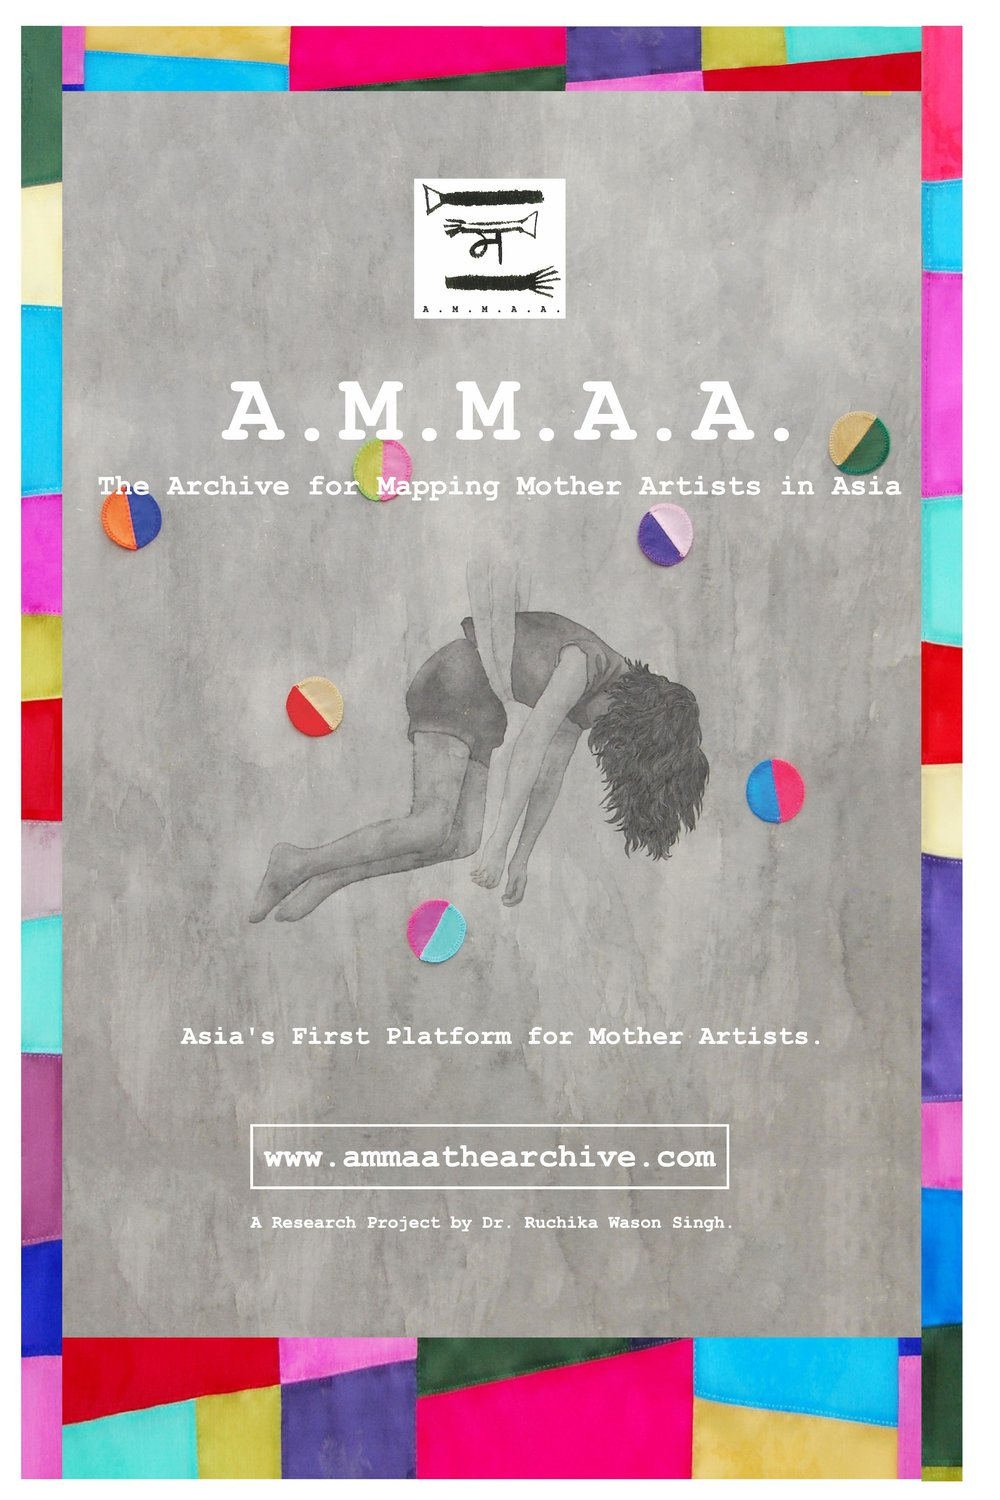 The A.M.M.A.A. Website Launch Poster ( April 15, 2017 )